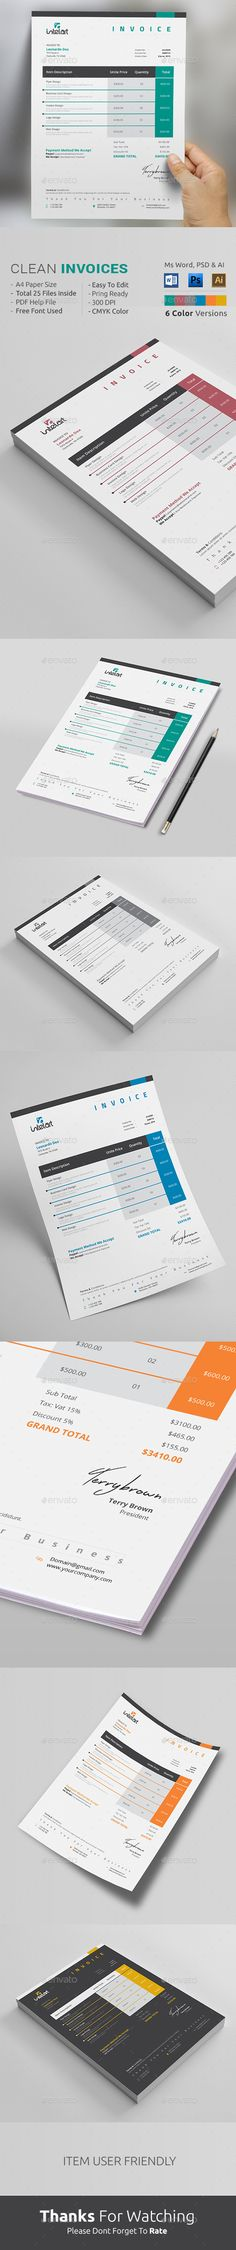 Image result for Australian Invoice Template Word Fresh Invoice     Image result for Australian Invoice Template Word Fresh Invoice Example  Free Invoices Template Word Mac Templates For New Australian Invoice Templa